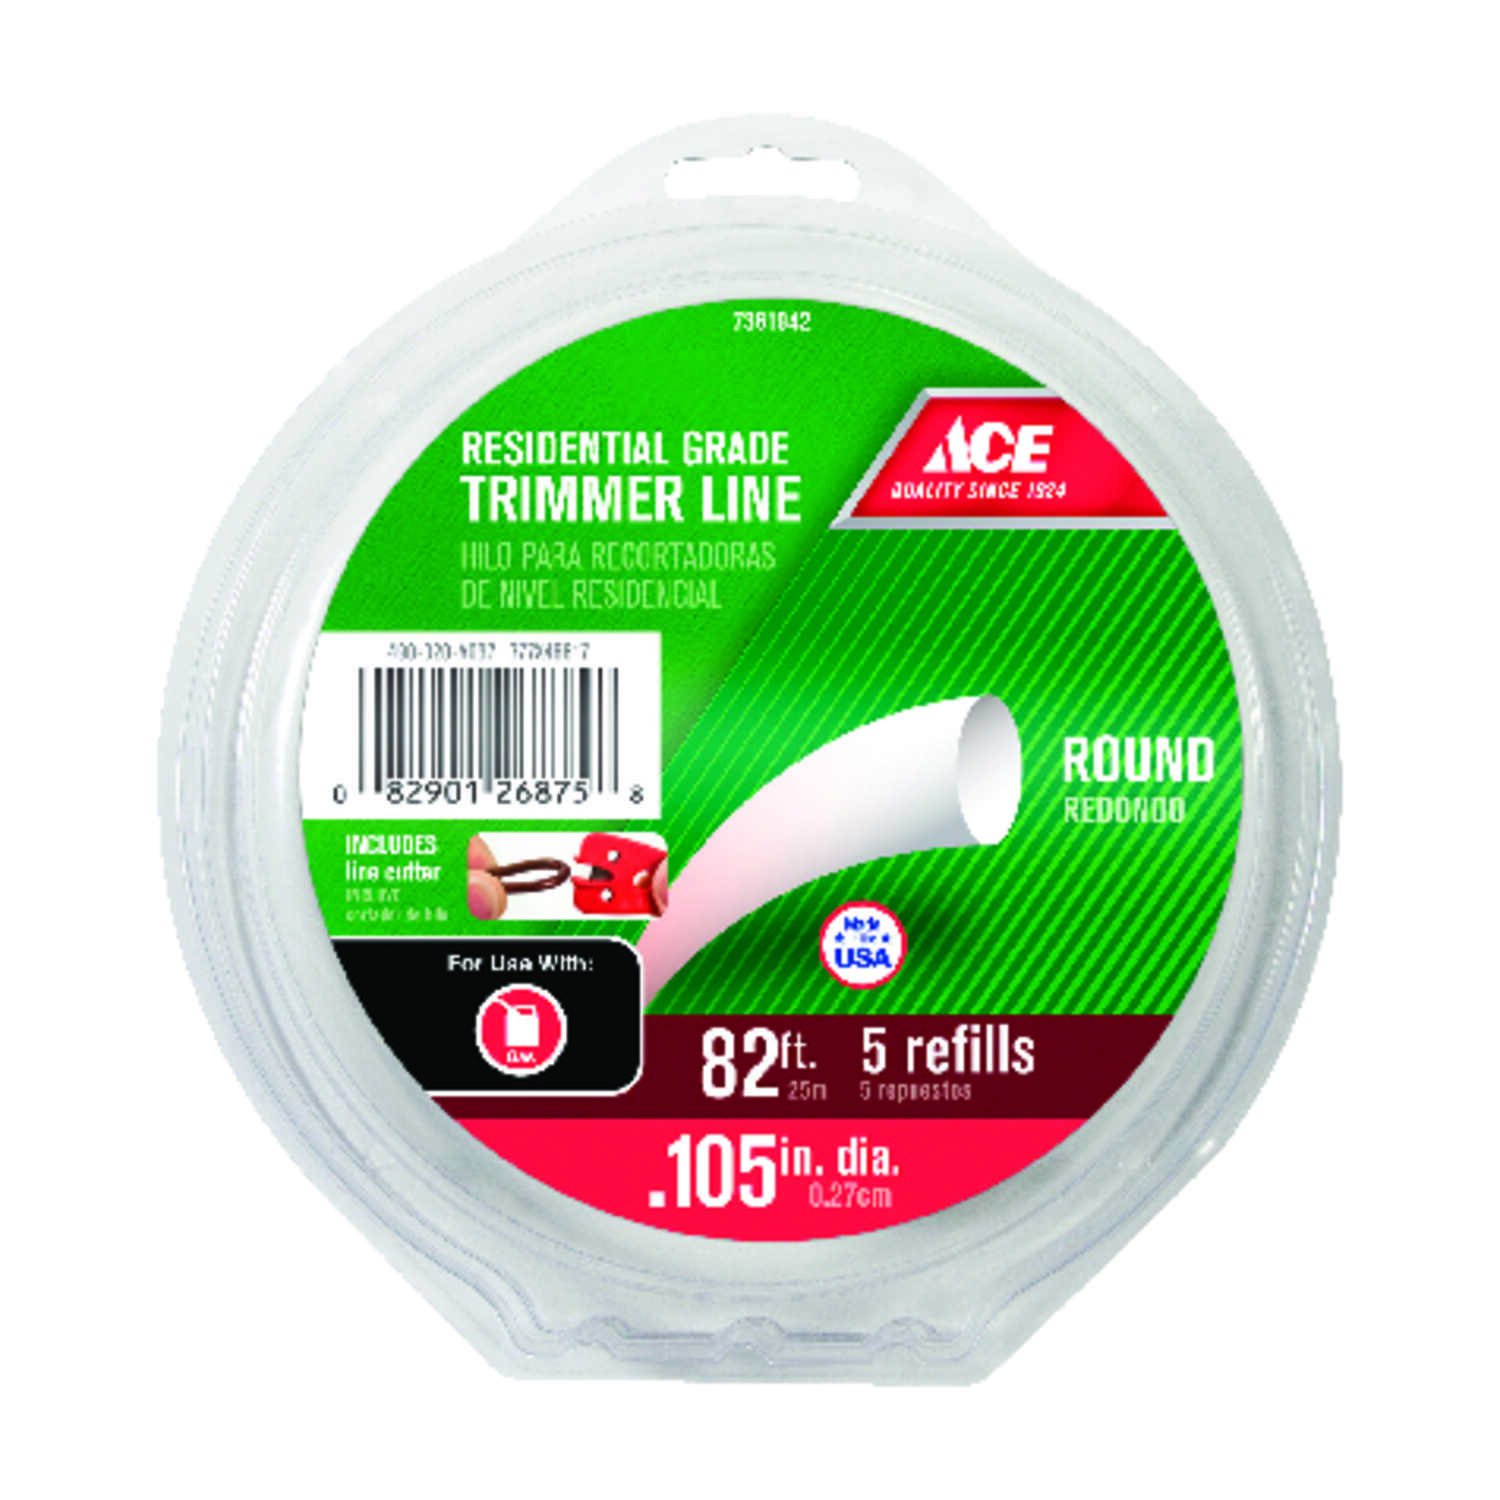 Ace  Residential Grade  0.105 in. Dia. Trimmer Line